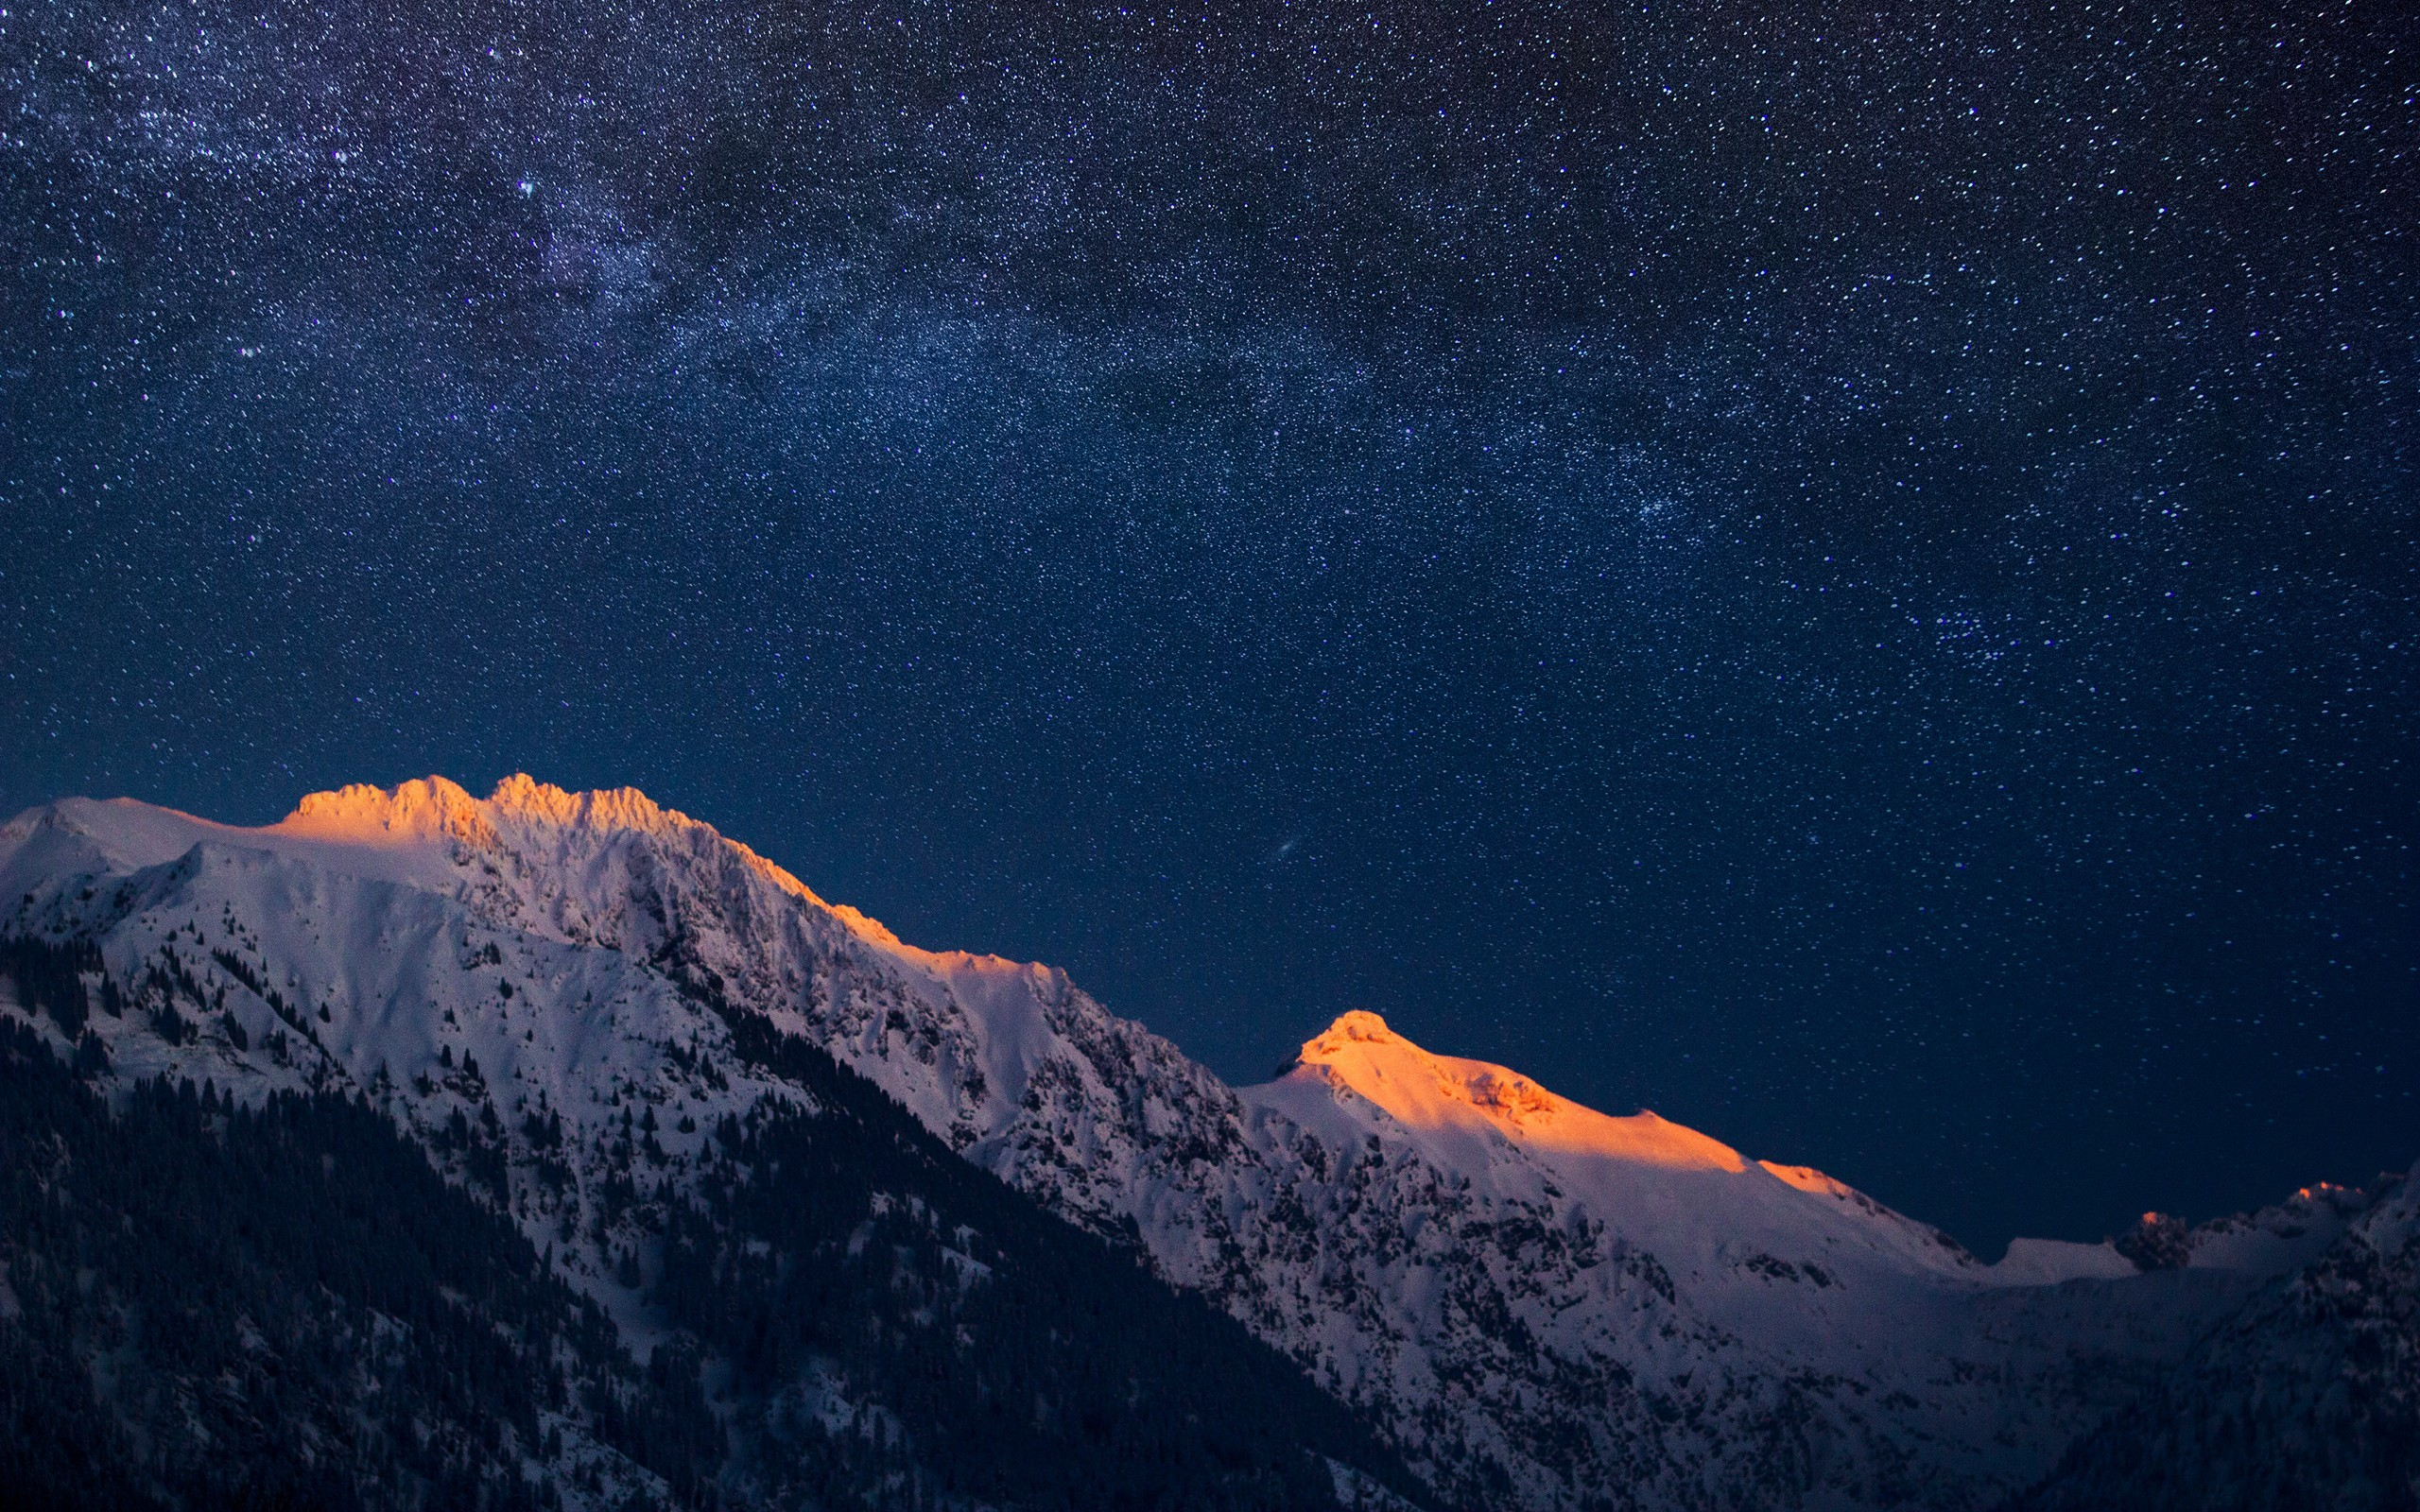 Mountains and a Night Sky HD Wallpaper | Download HD Wallpapers HD Wide  Wallpaper for Widescreen